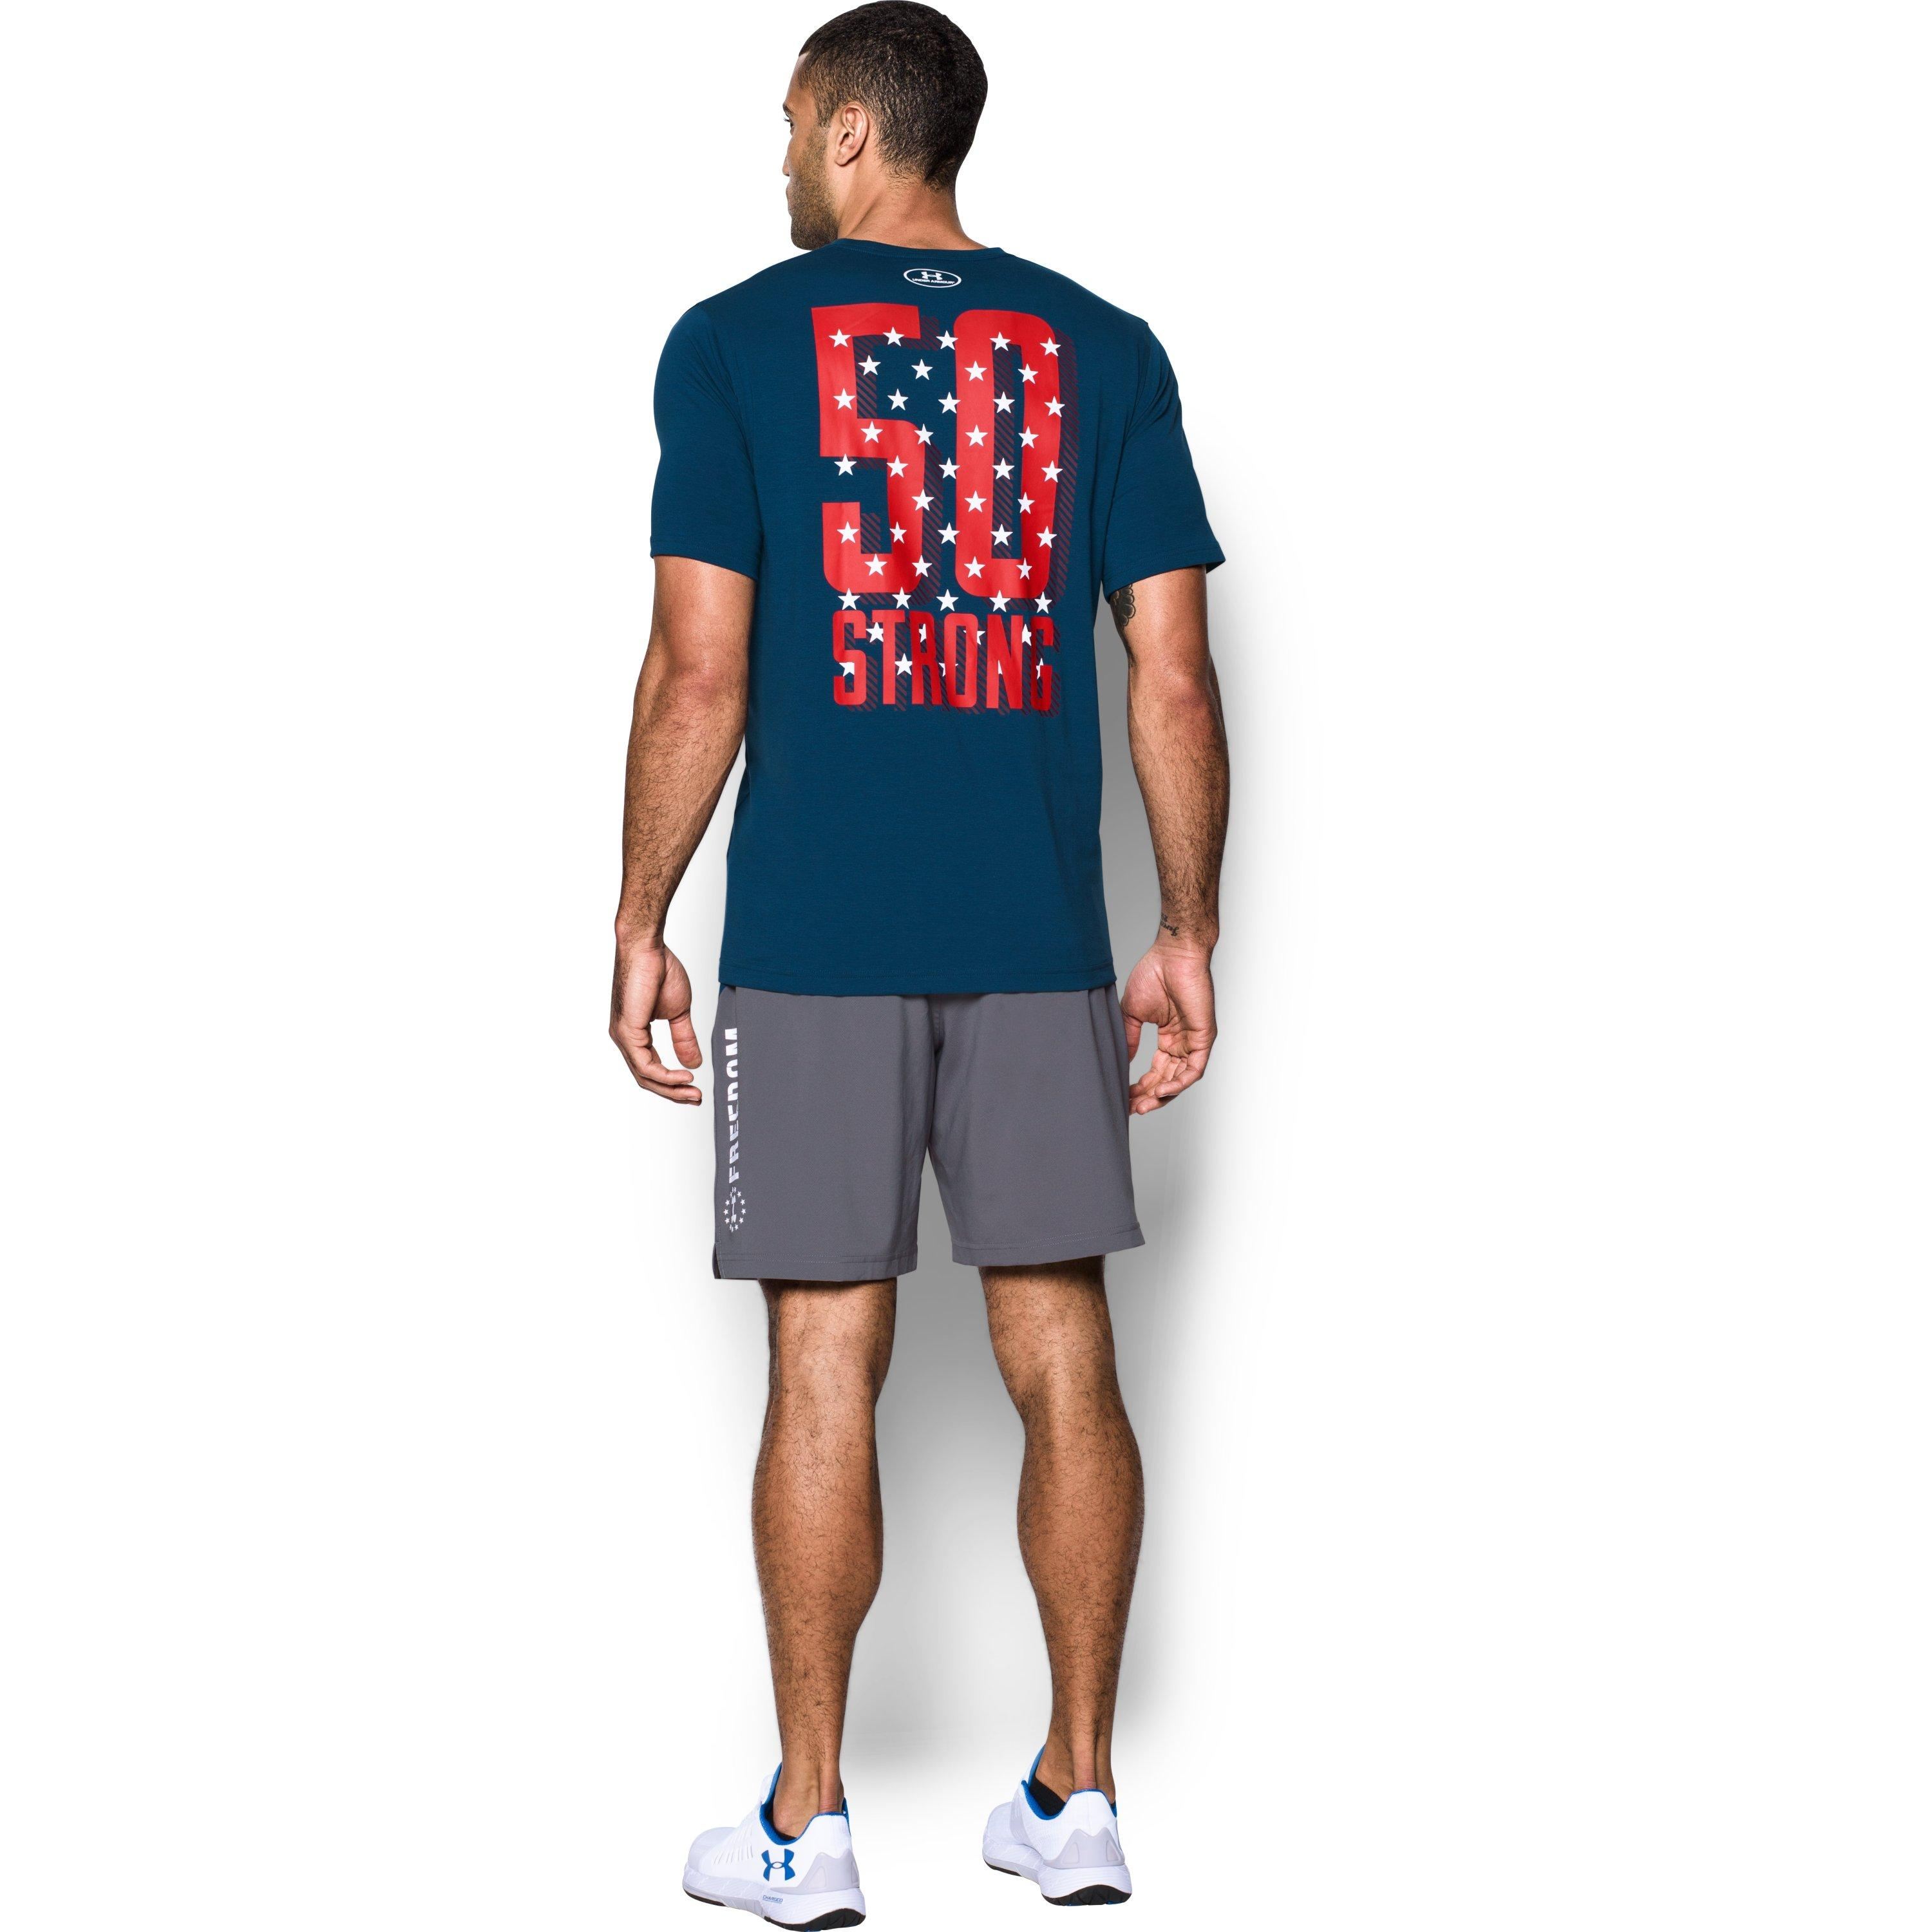 Under Armour Men S Ua Freedom 50 Strong T Shirt In Blue